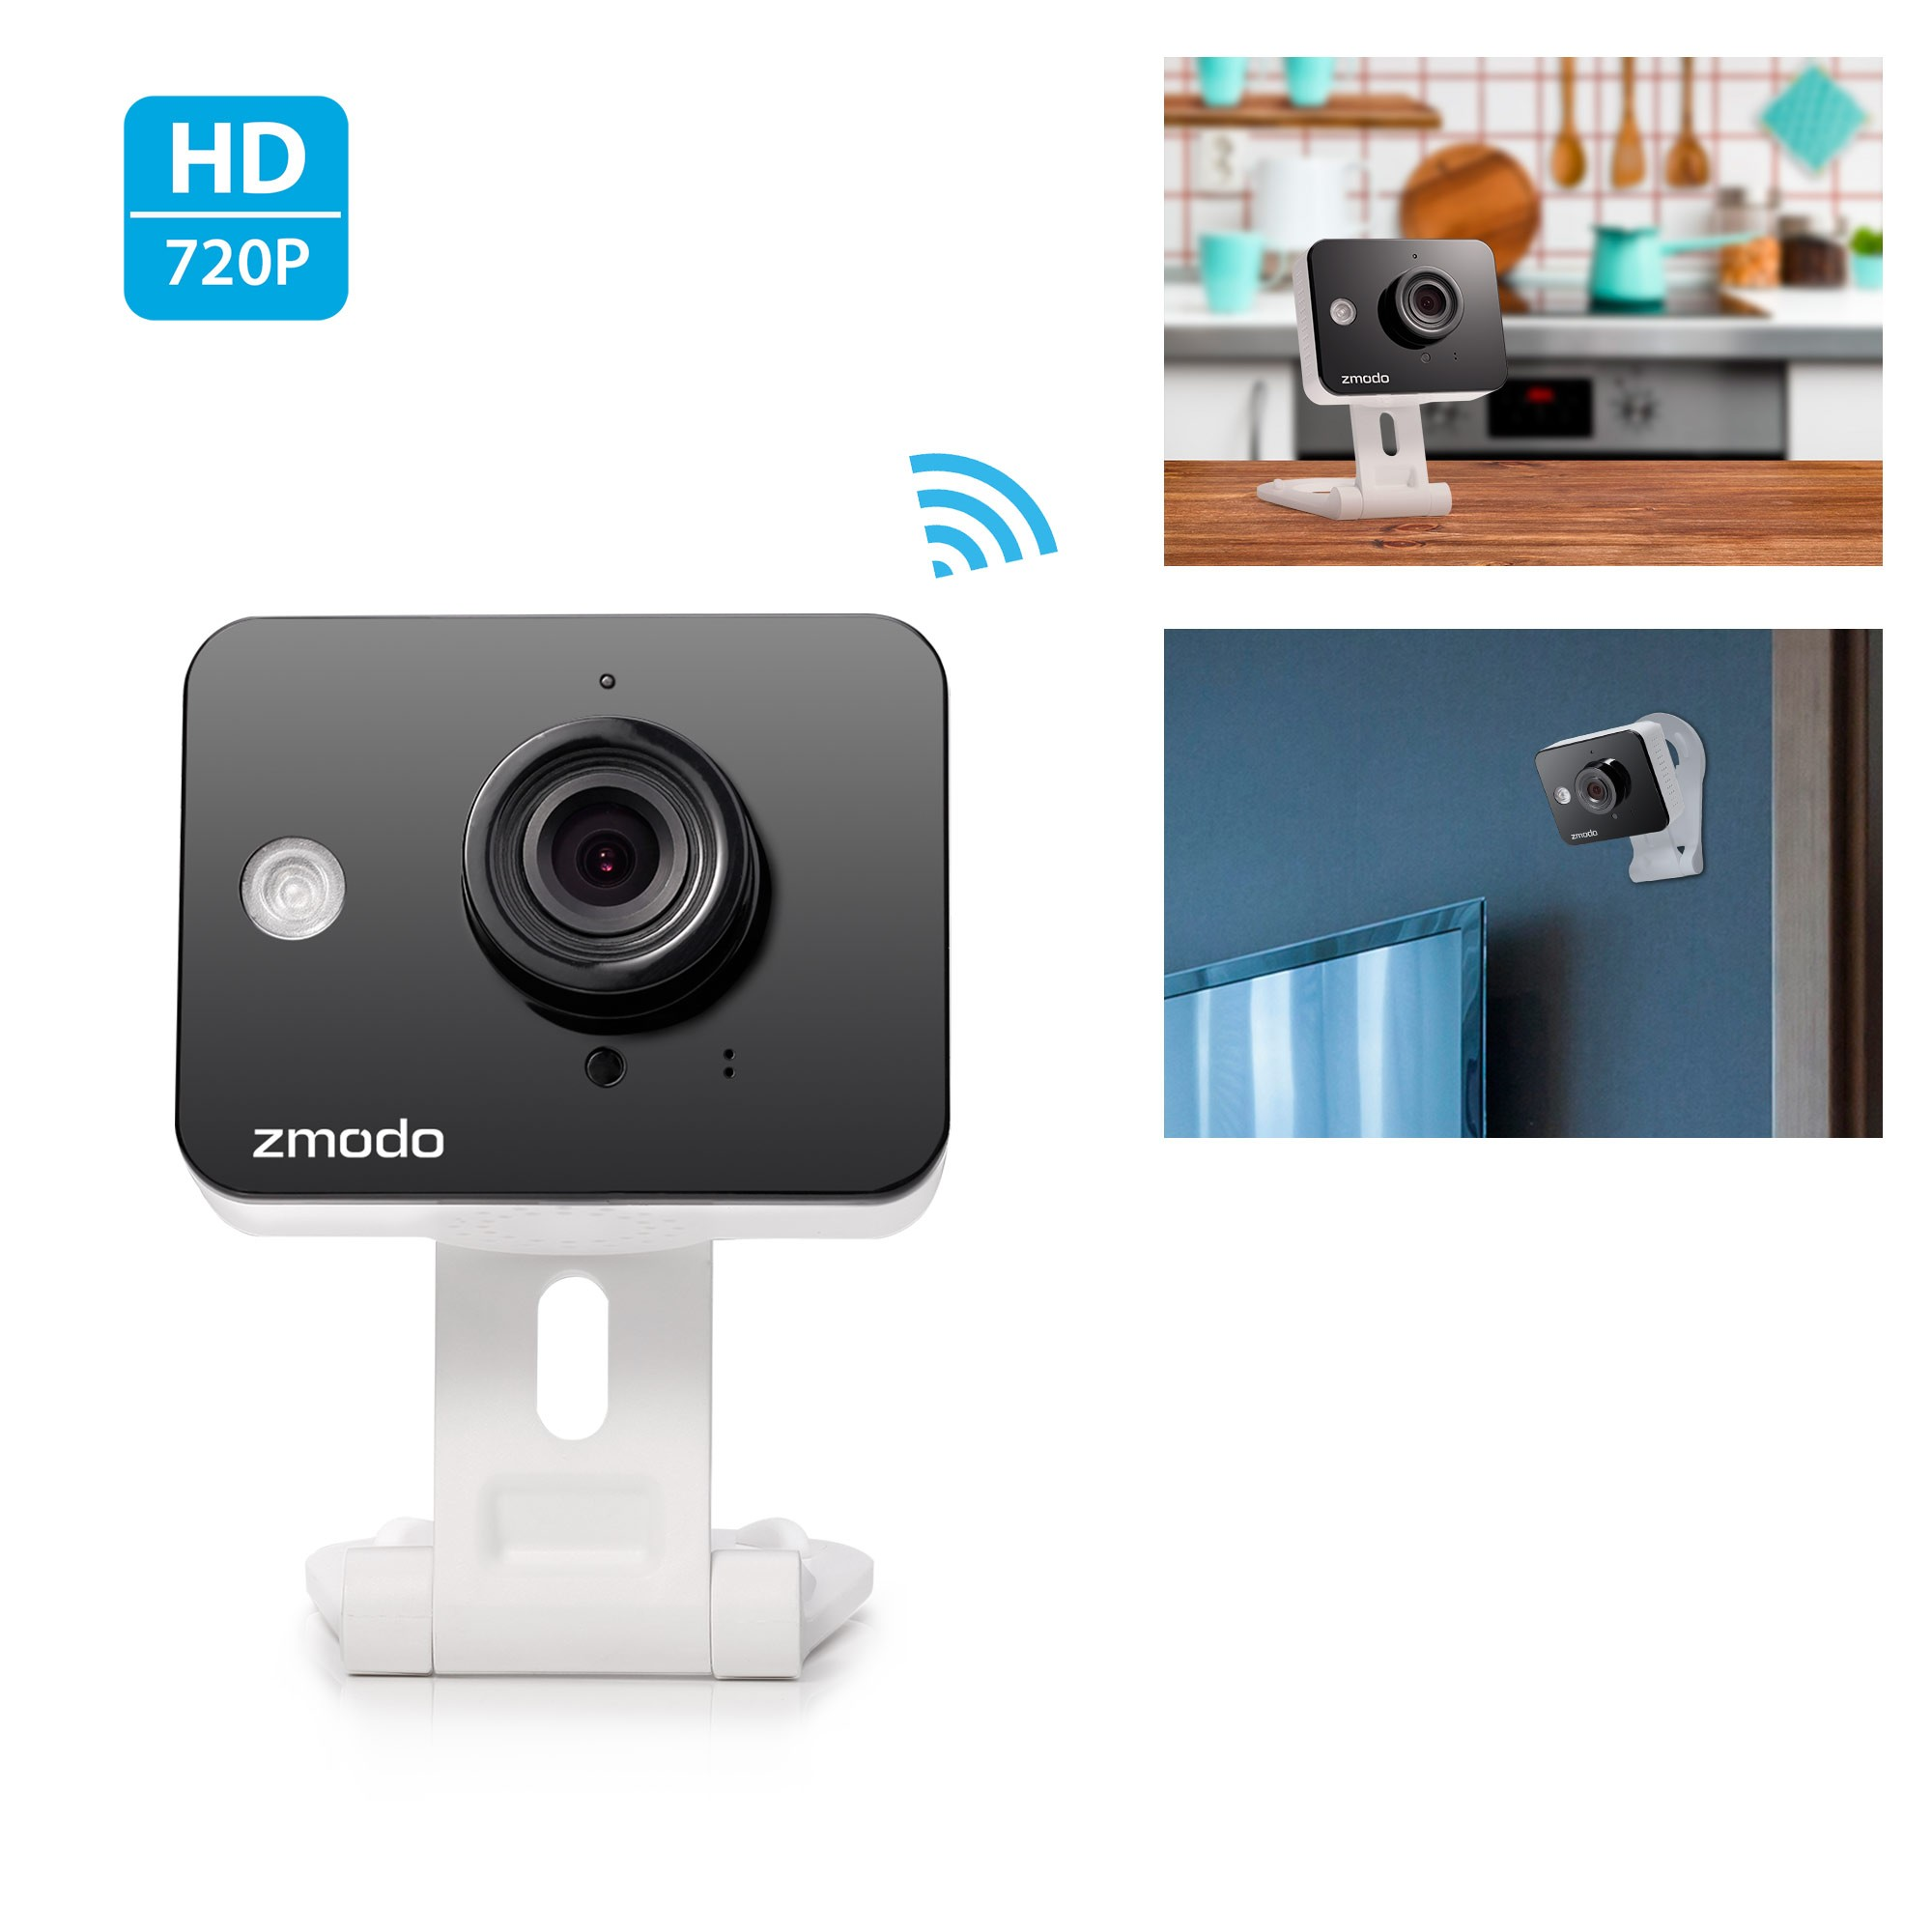 Zmodo Mini WiFi Camera